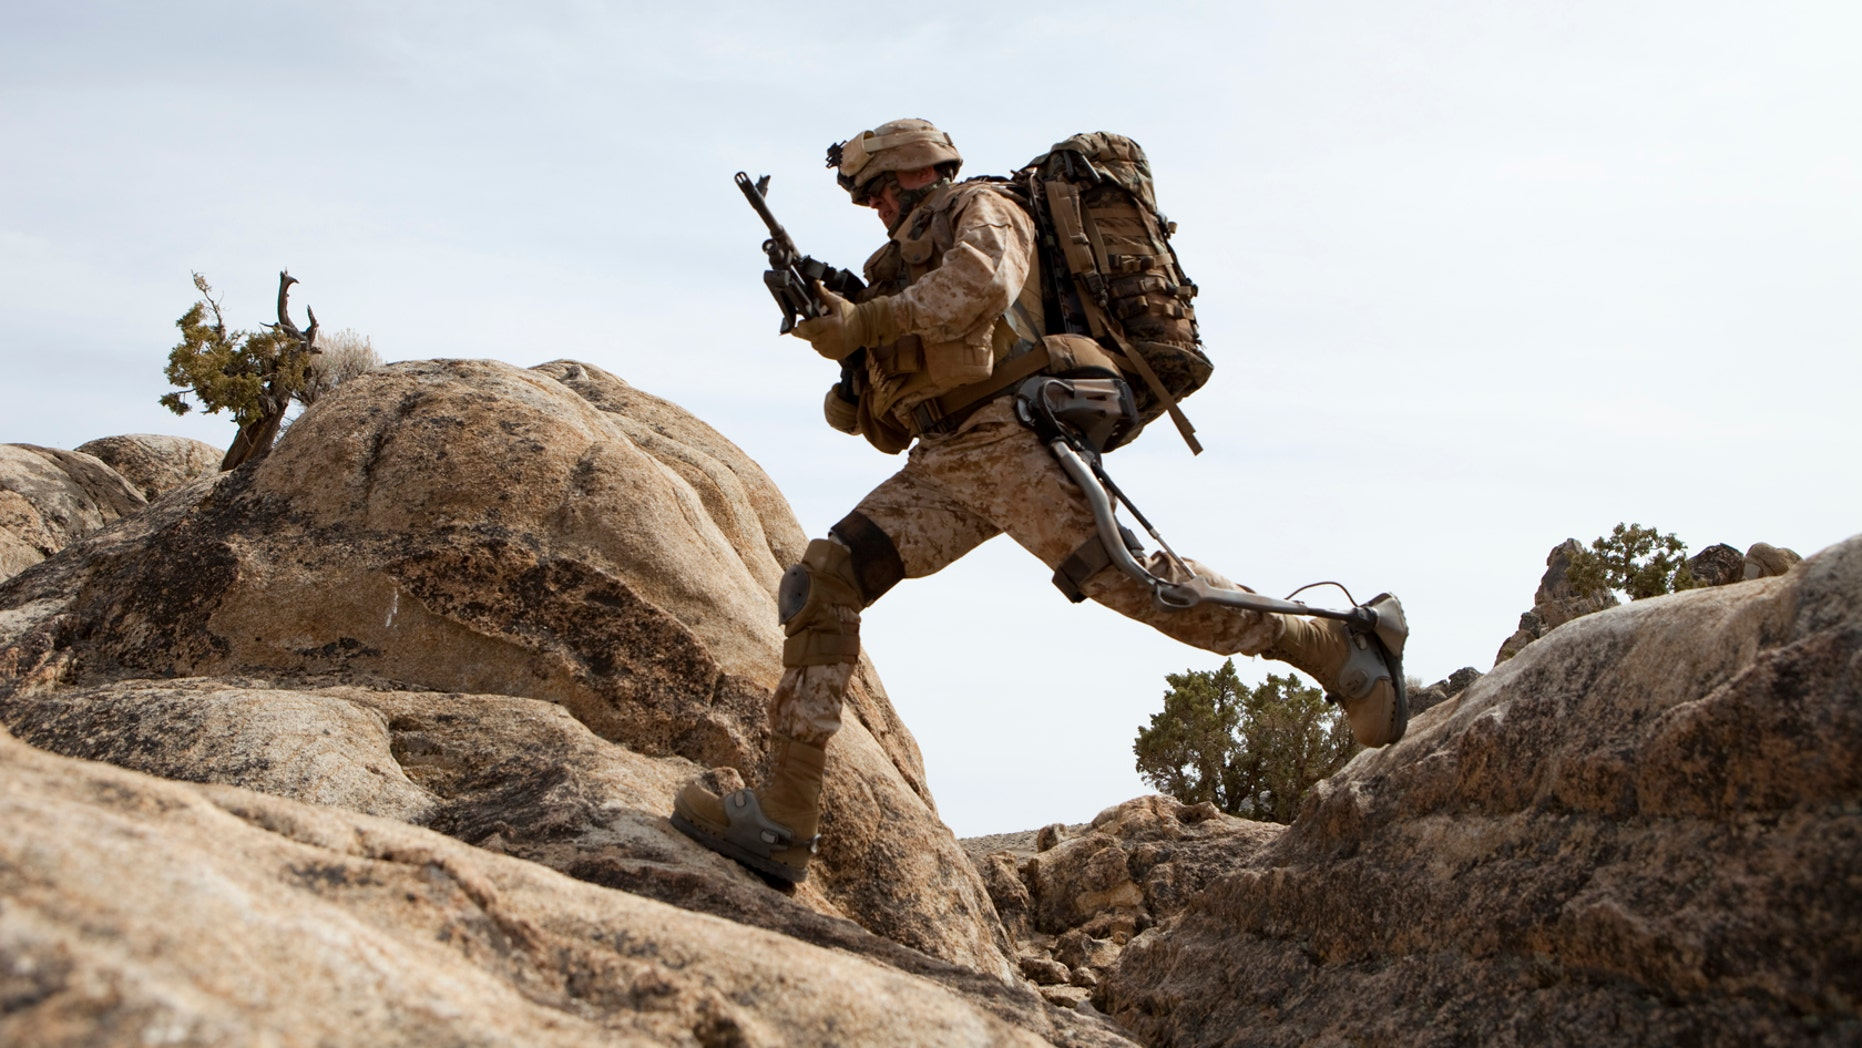 Lockheed Martin's HULC exoskeleton provides an energy boost for troops and helps prevent injuries during a battle.